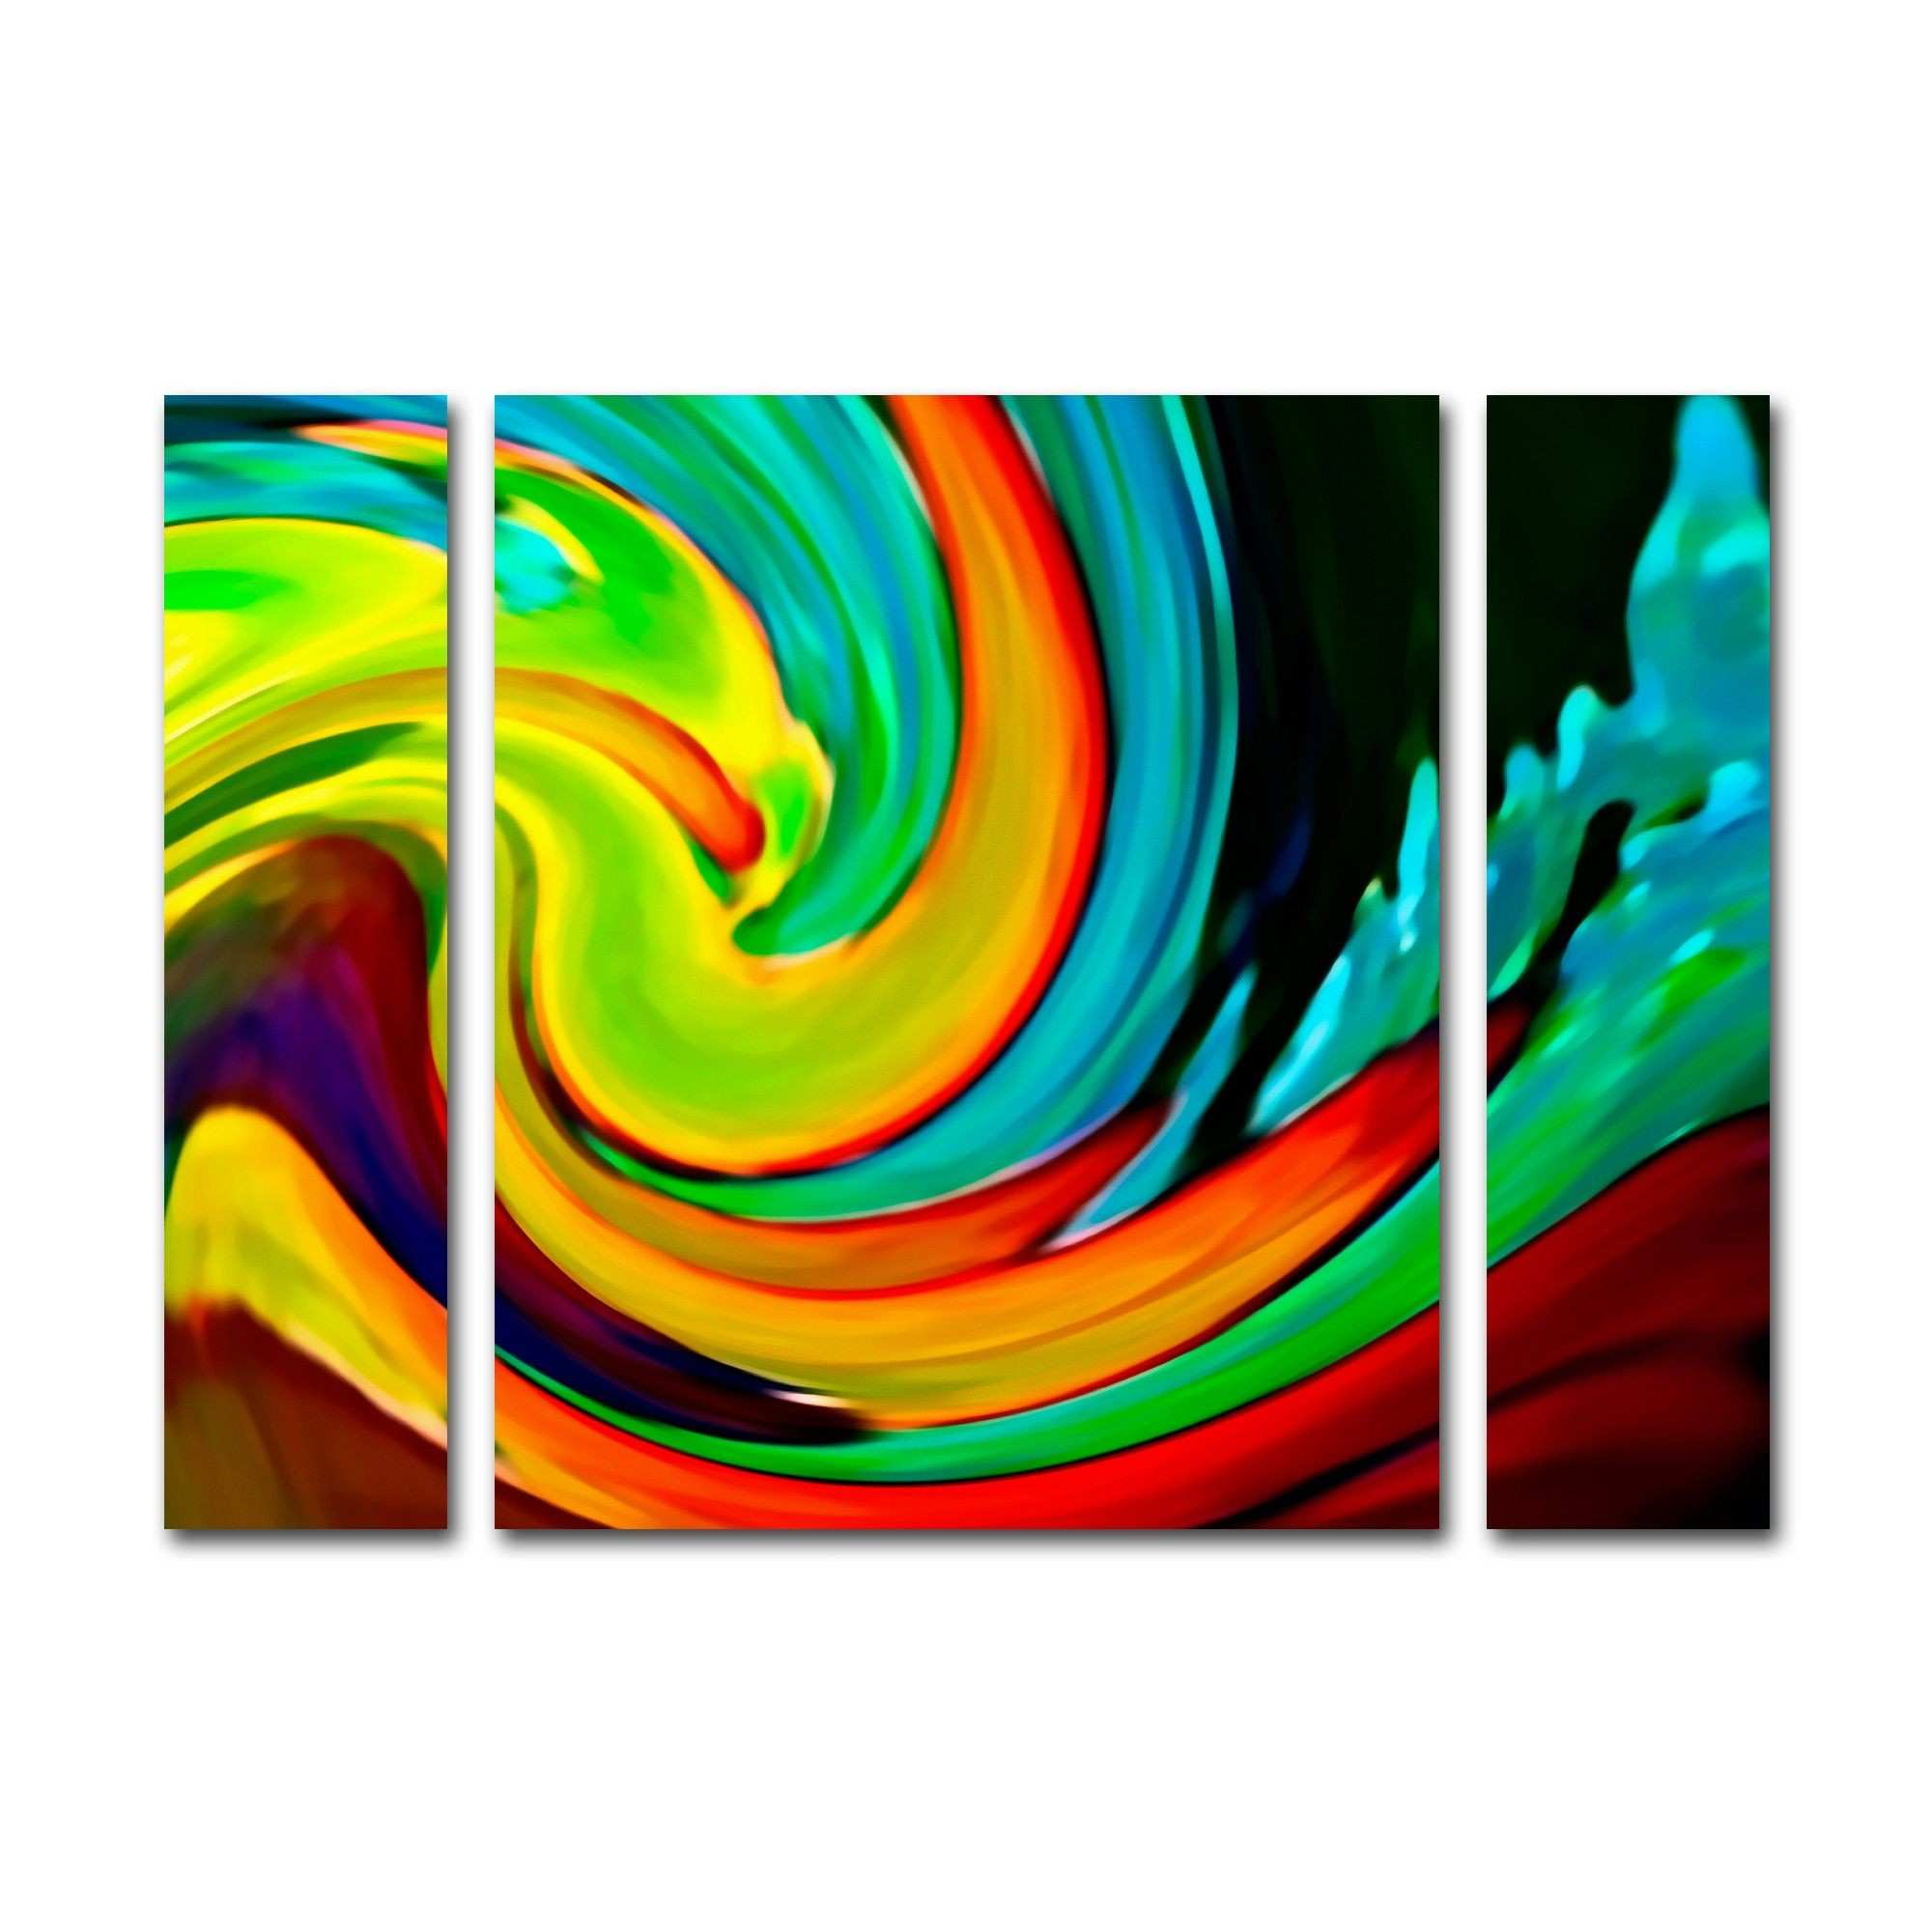 Crashing Wave by Amy Vangsgard 3 Piece Painting Print on Wrapped